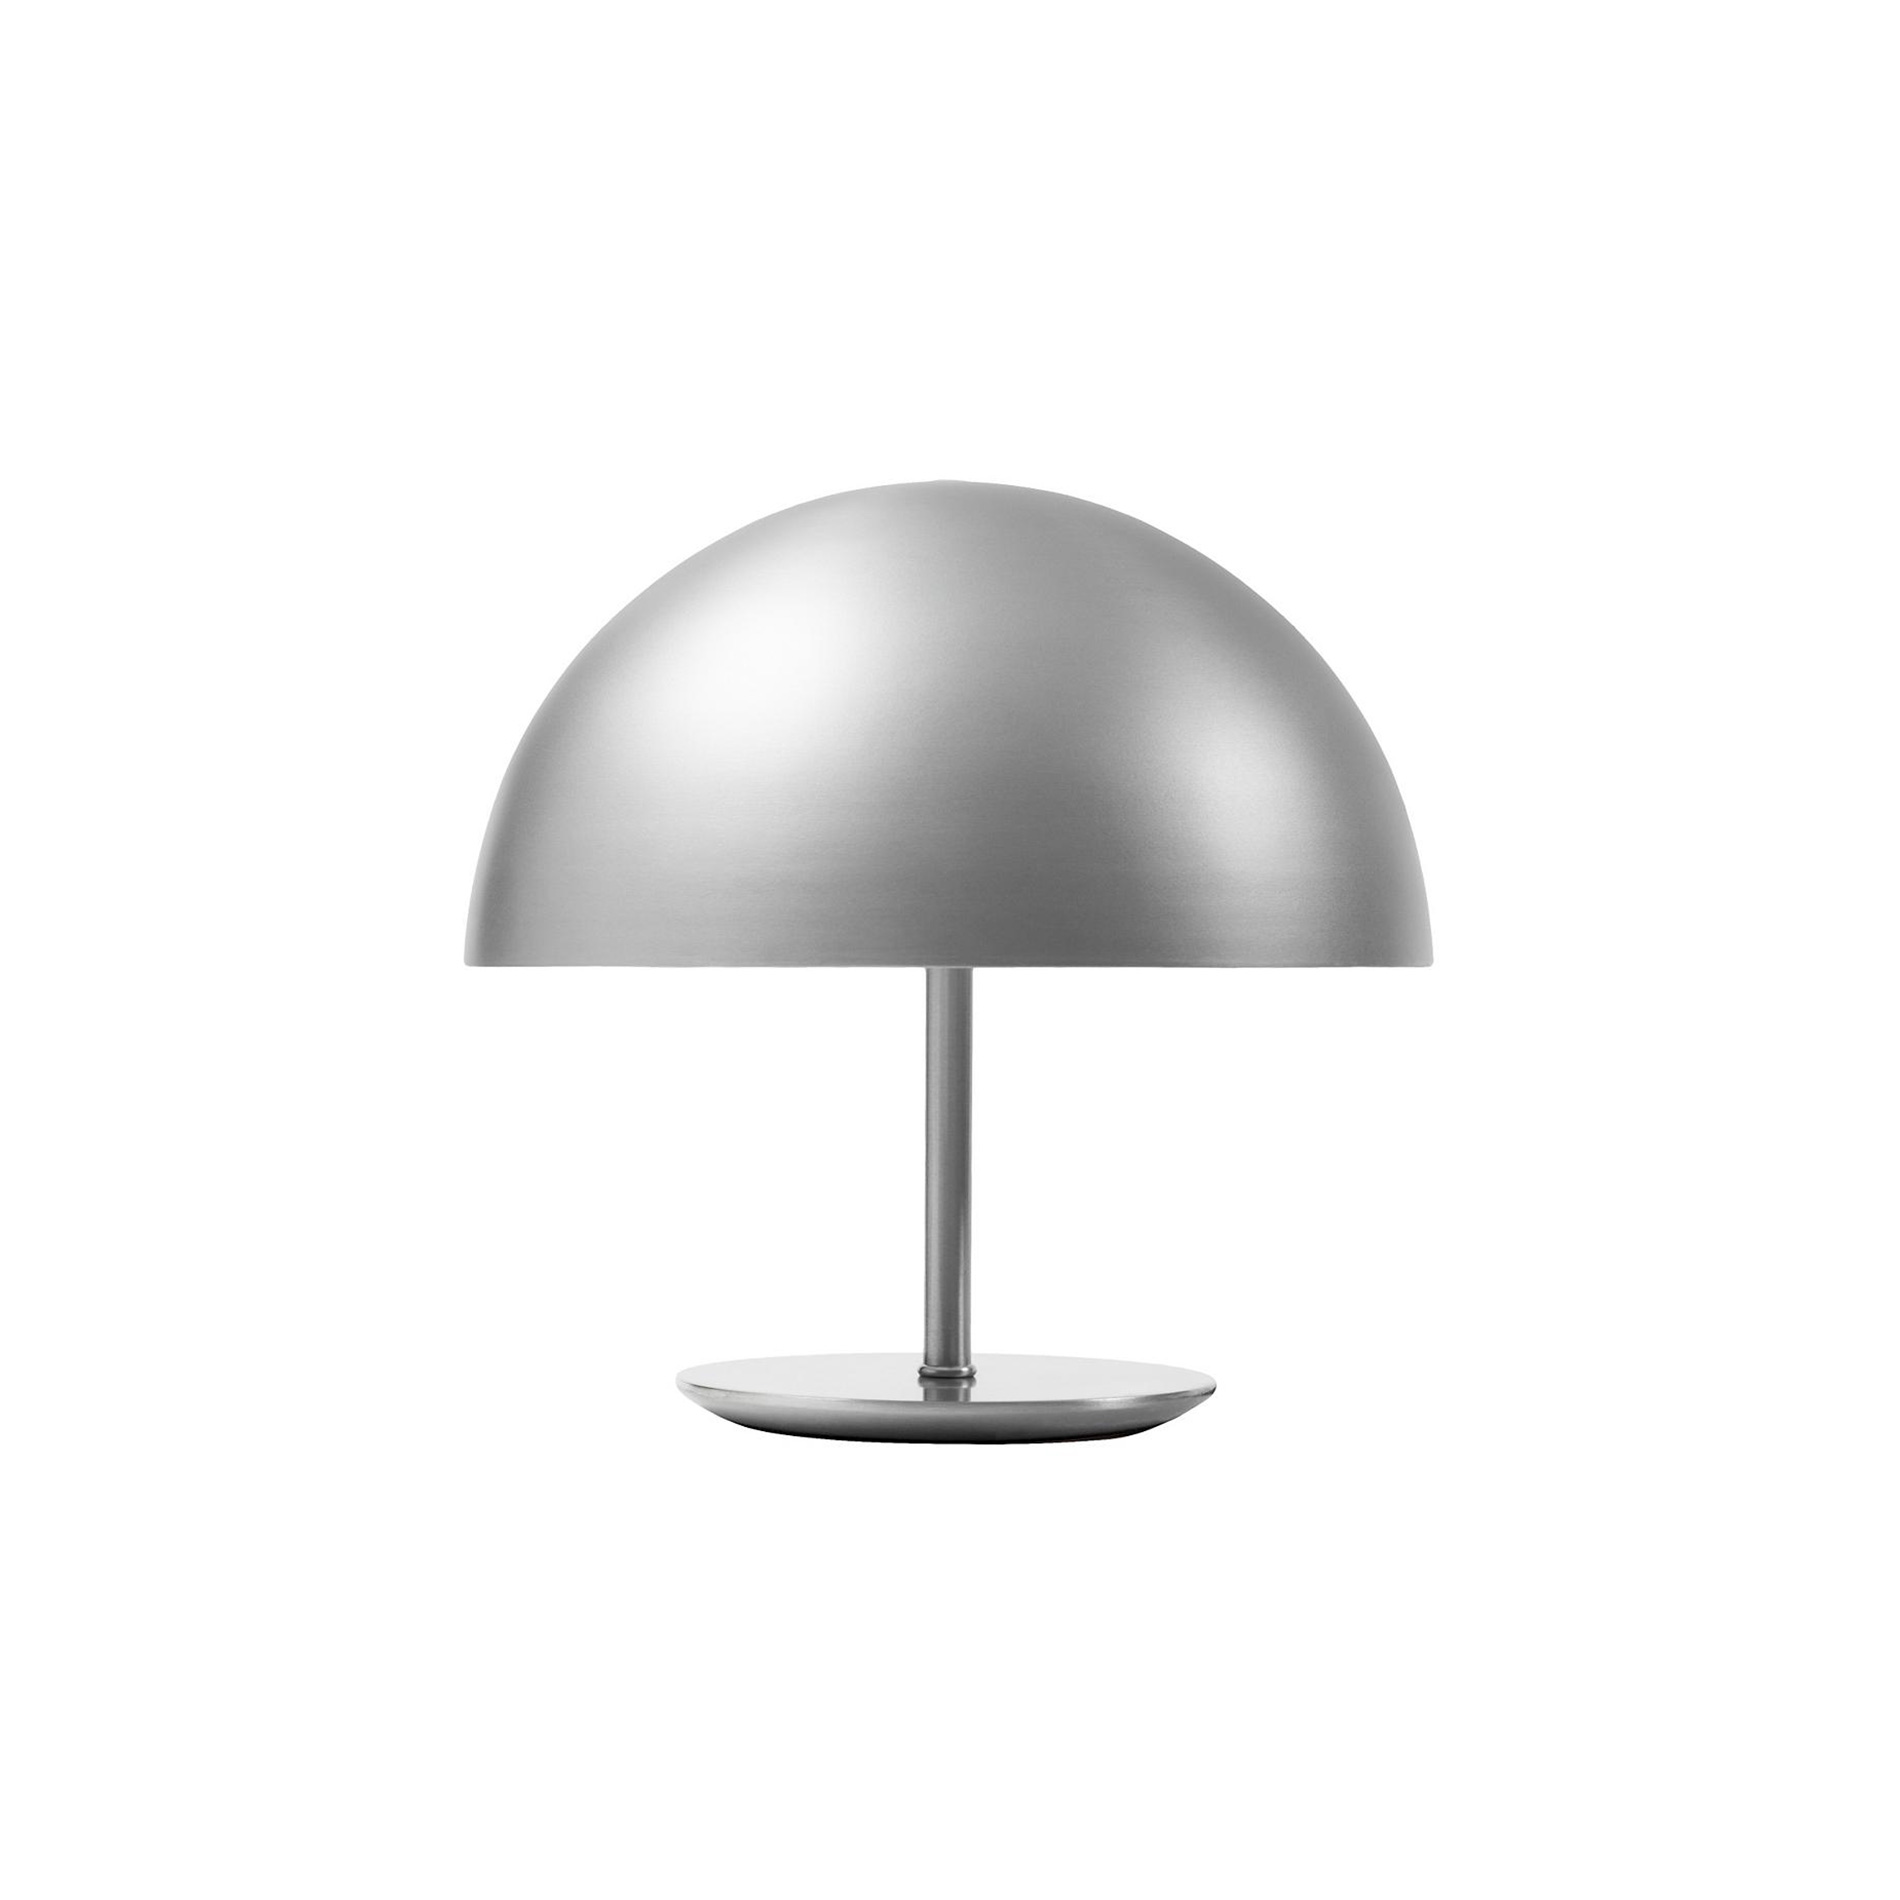 Baby Dome Lamp by Mater